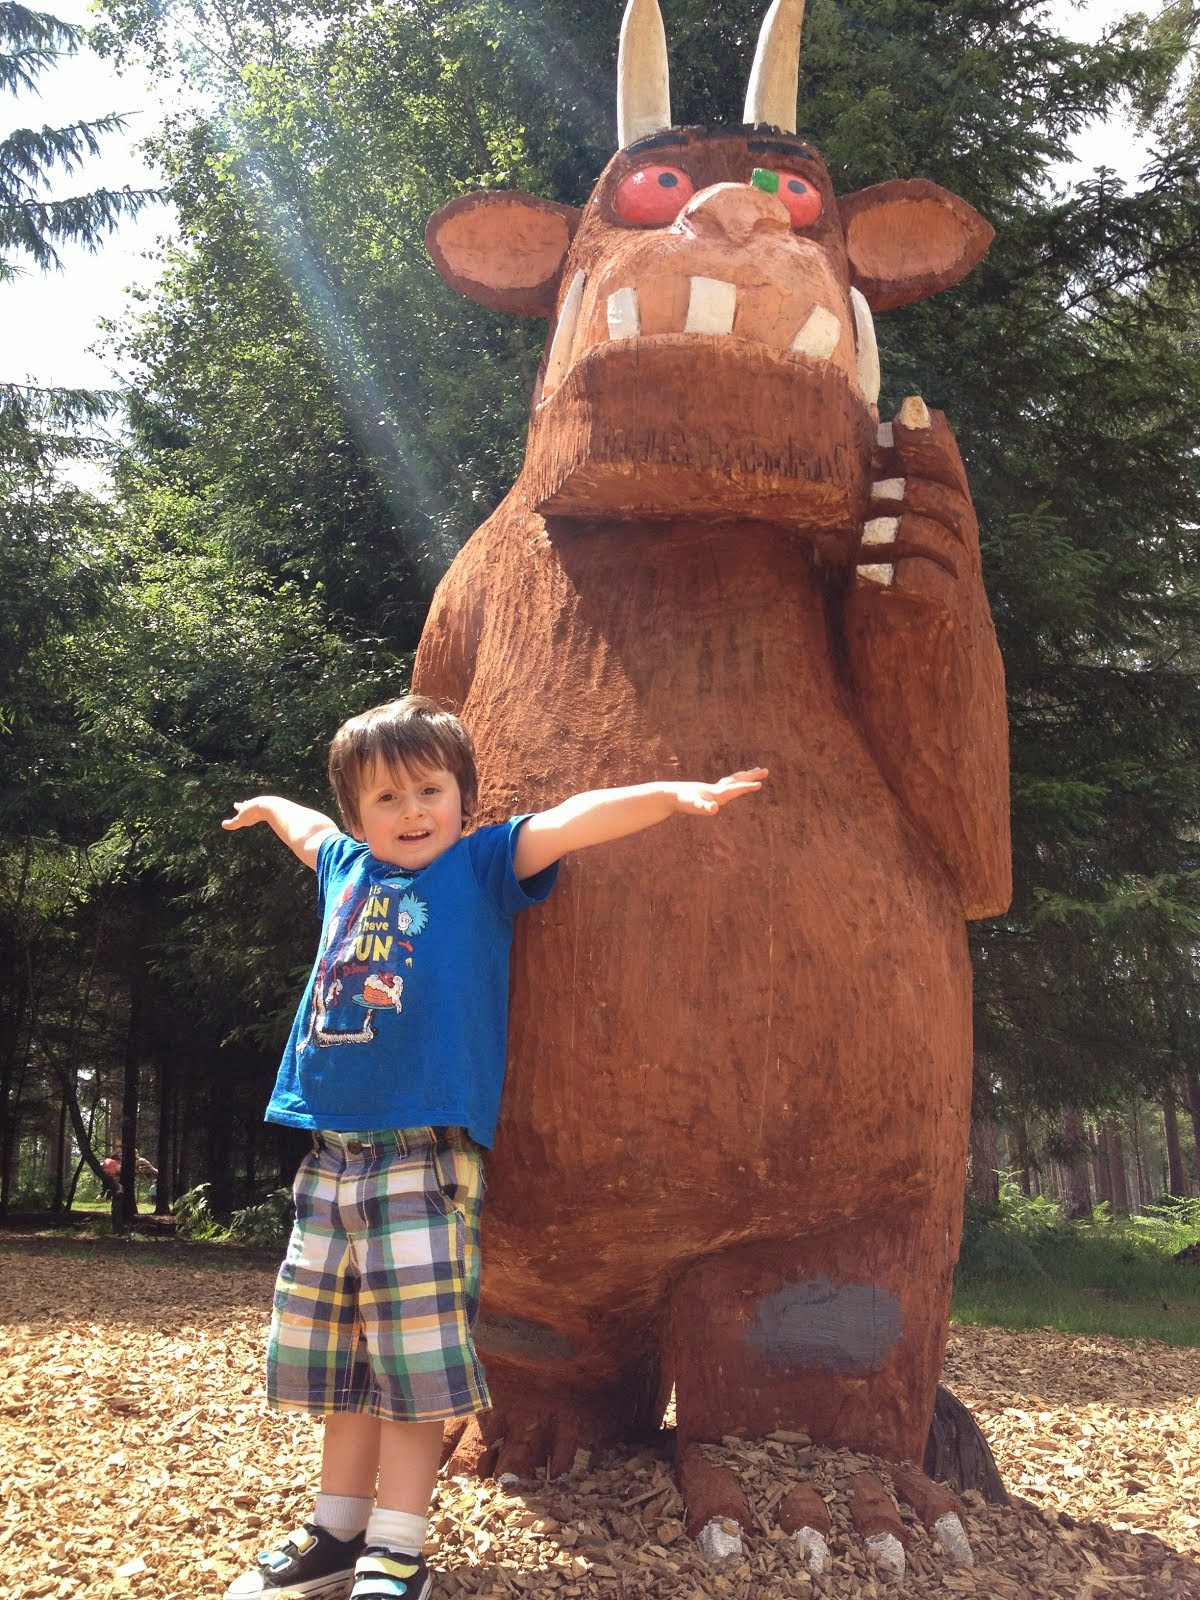 Hunting for the Gruffalo